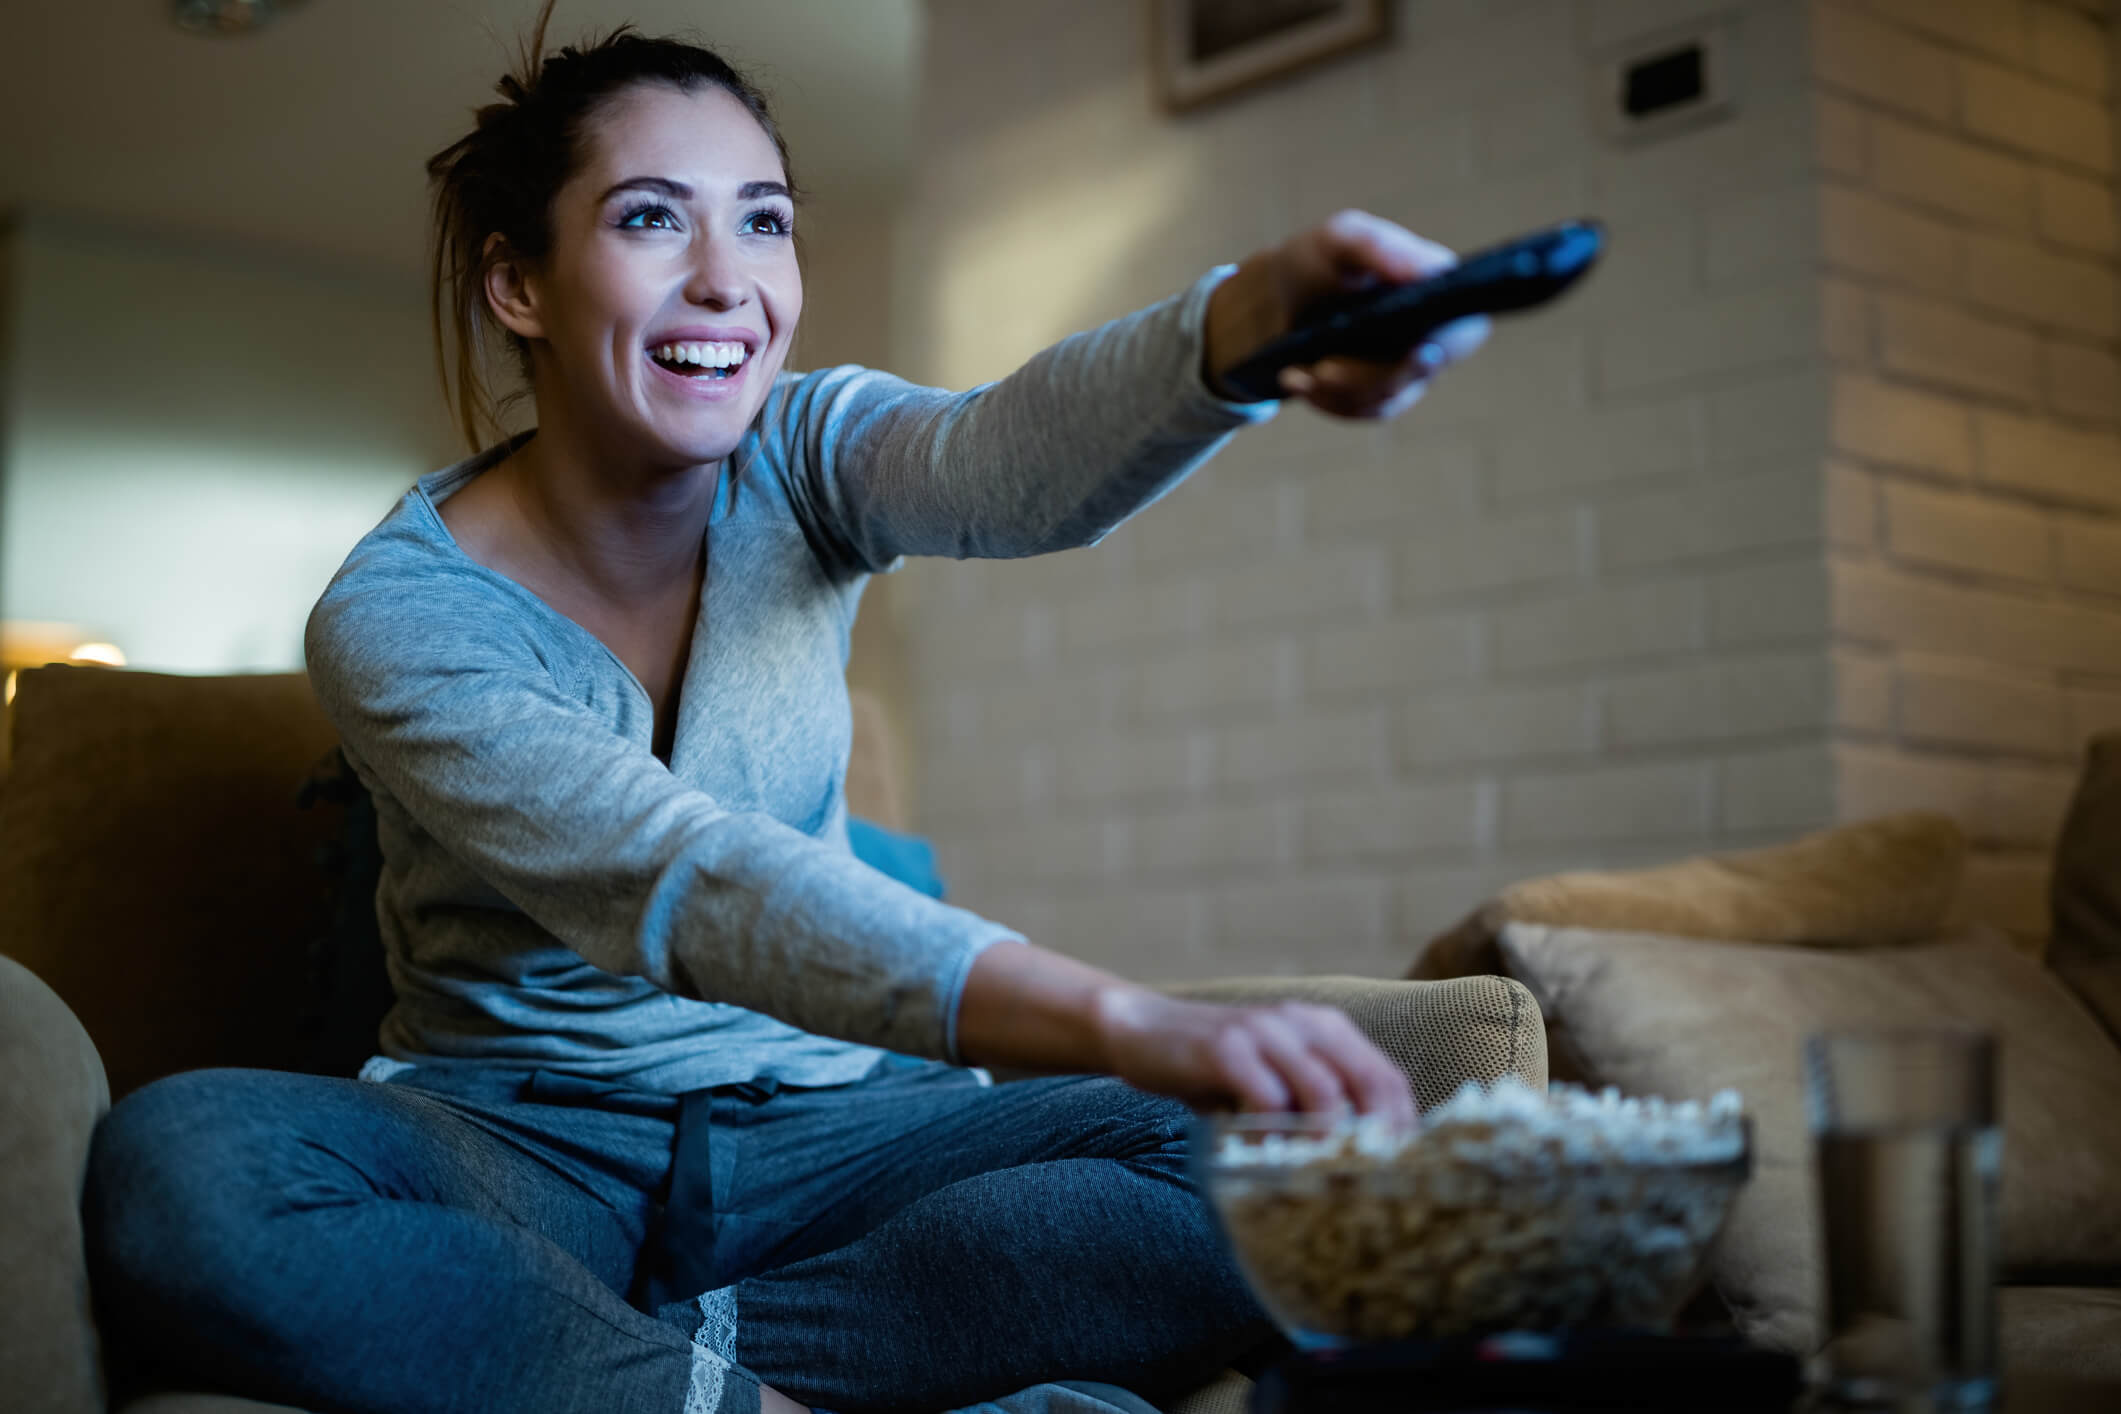 Woman on couch watching Amazon Fire TV